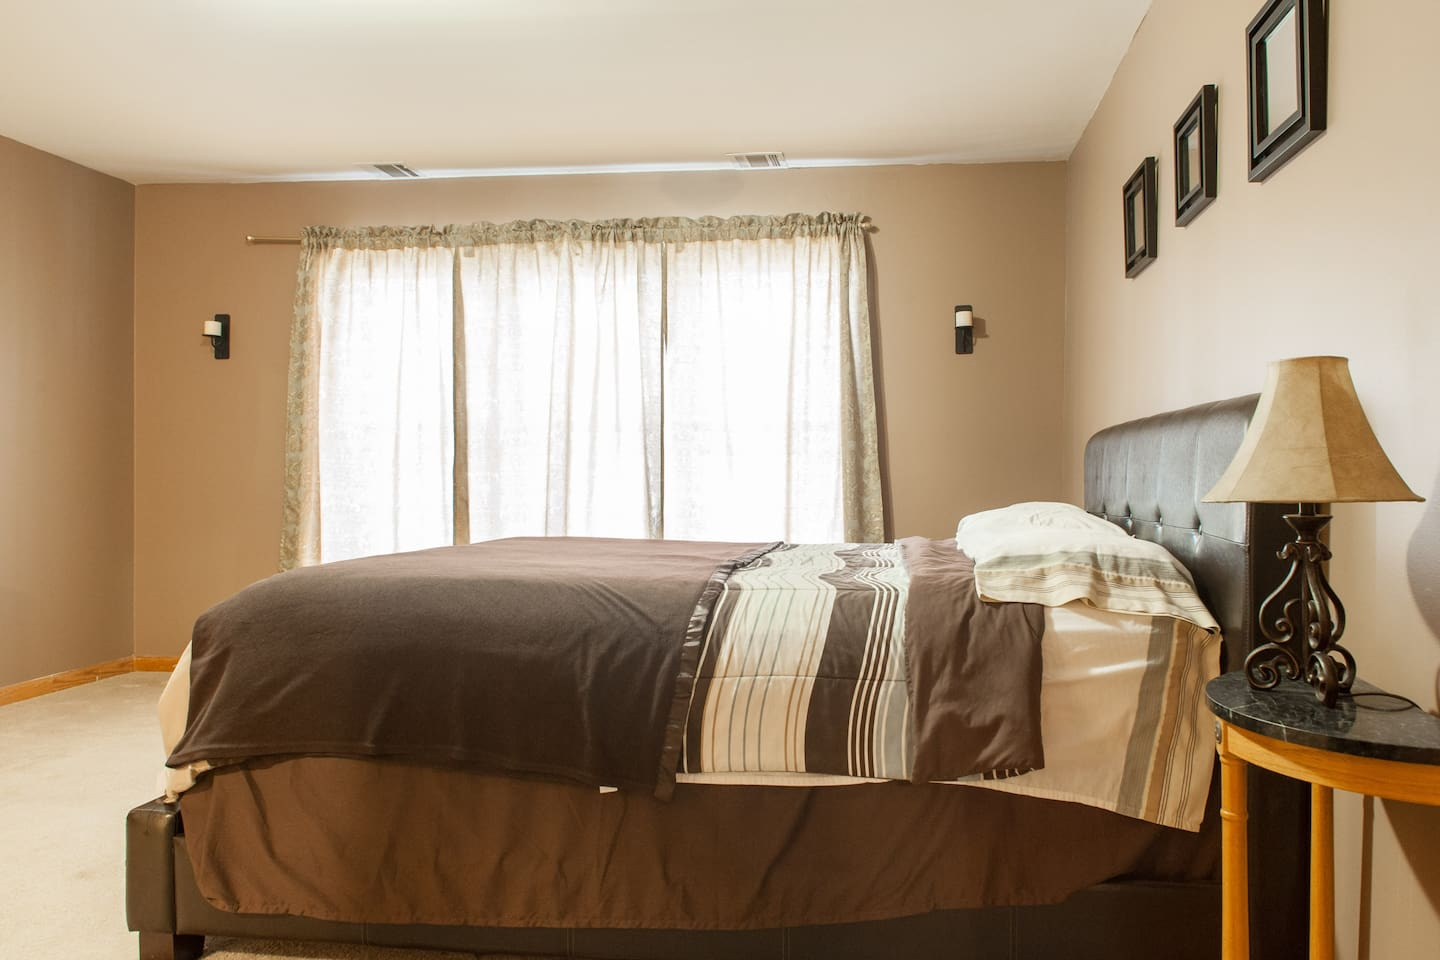 3 Bedroom Apartments For Rent In Paterson Nj 28 Images